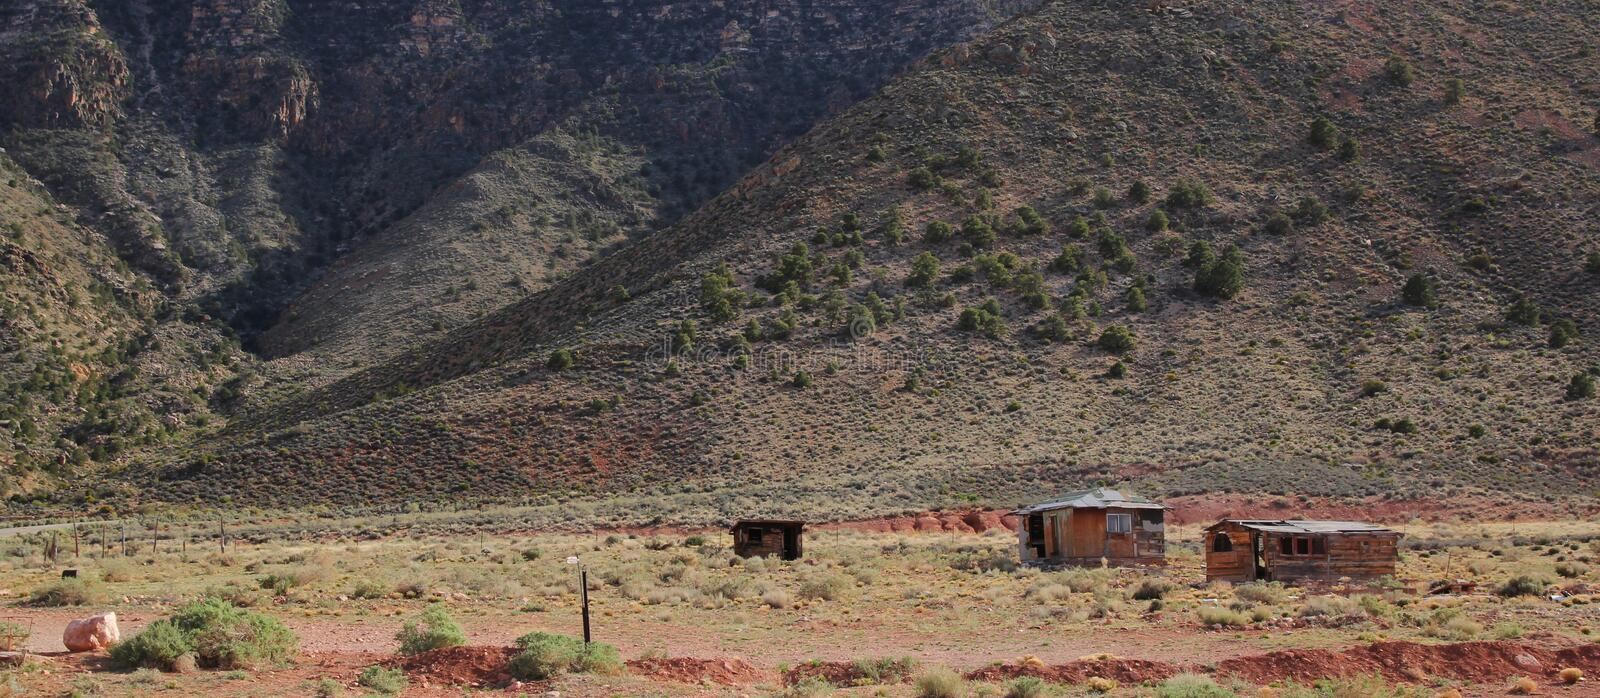 Download Wooden Cabins In Arizona Stock Images - Image: 25939014